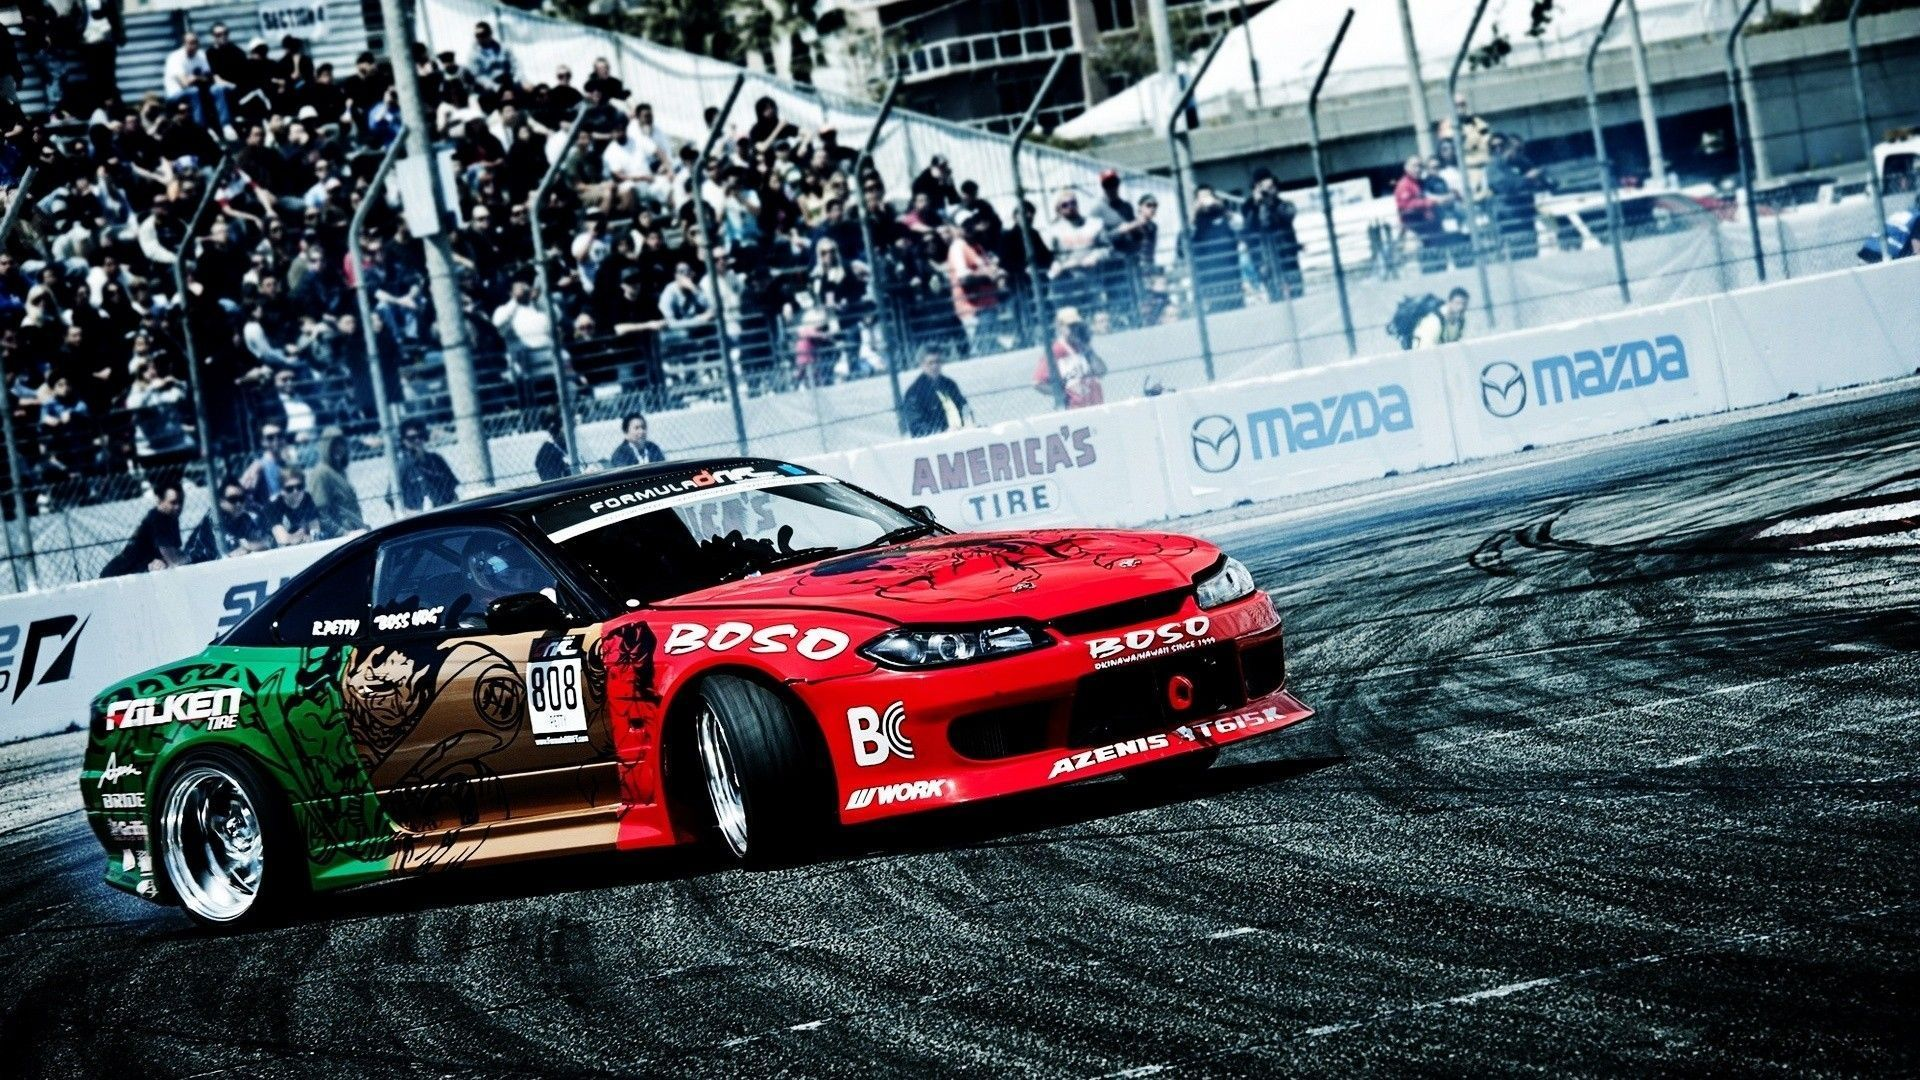 Drifting Wallpaper 1080p For Desktop Wallpaper Drifting Cars